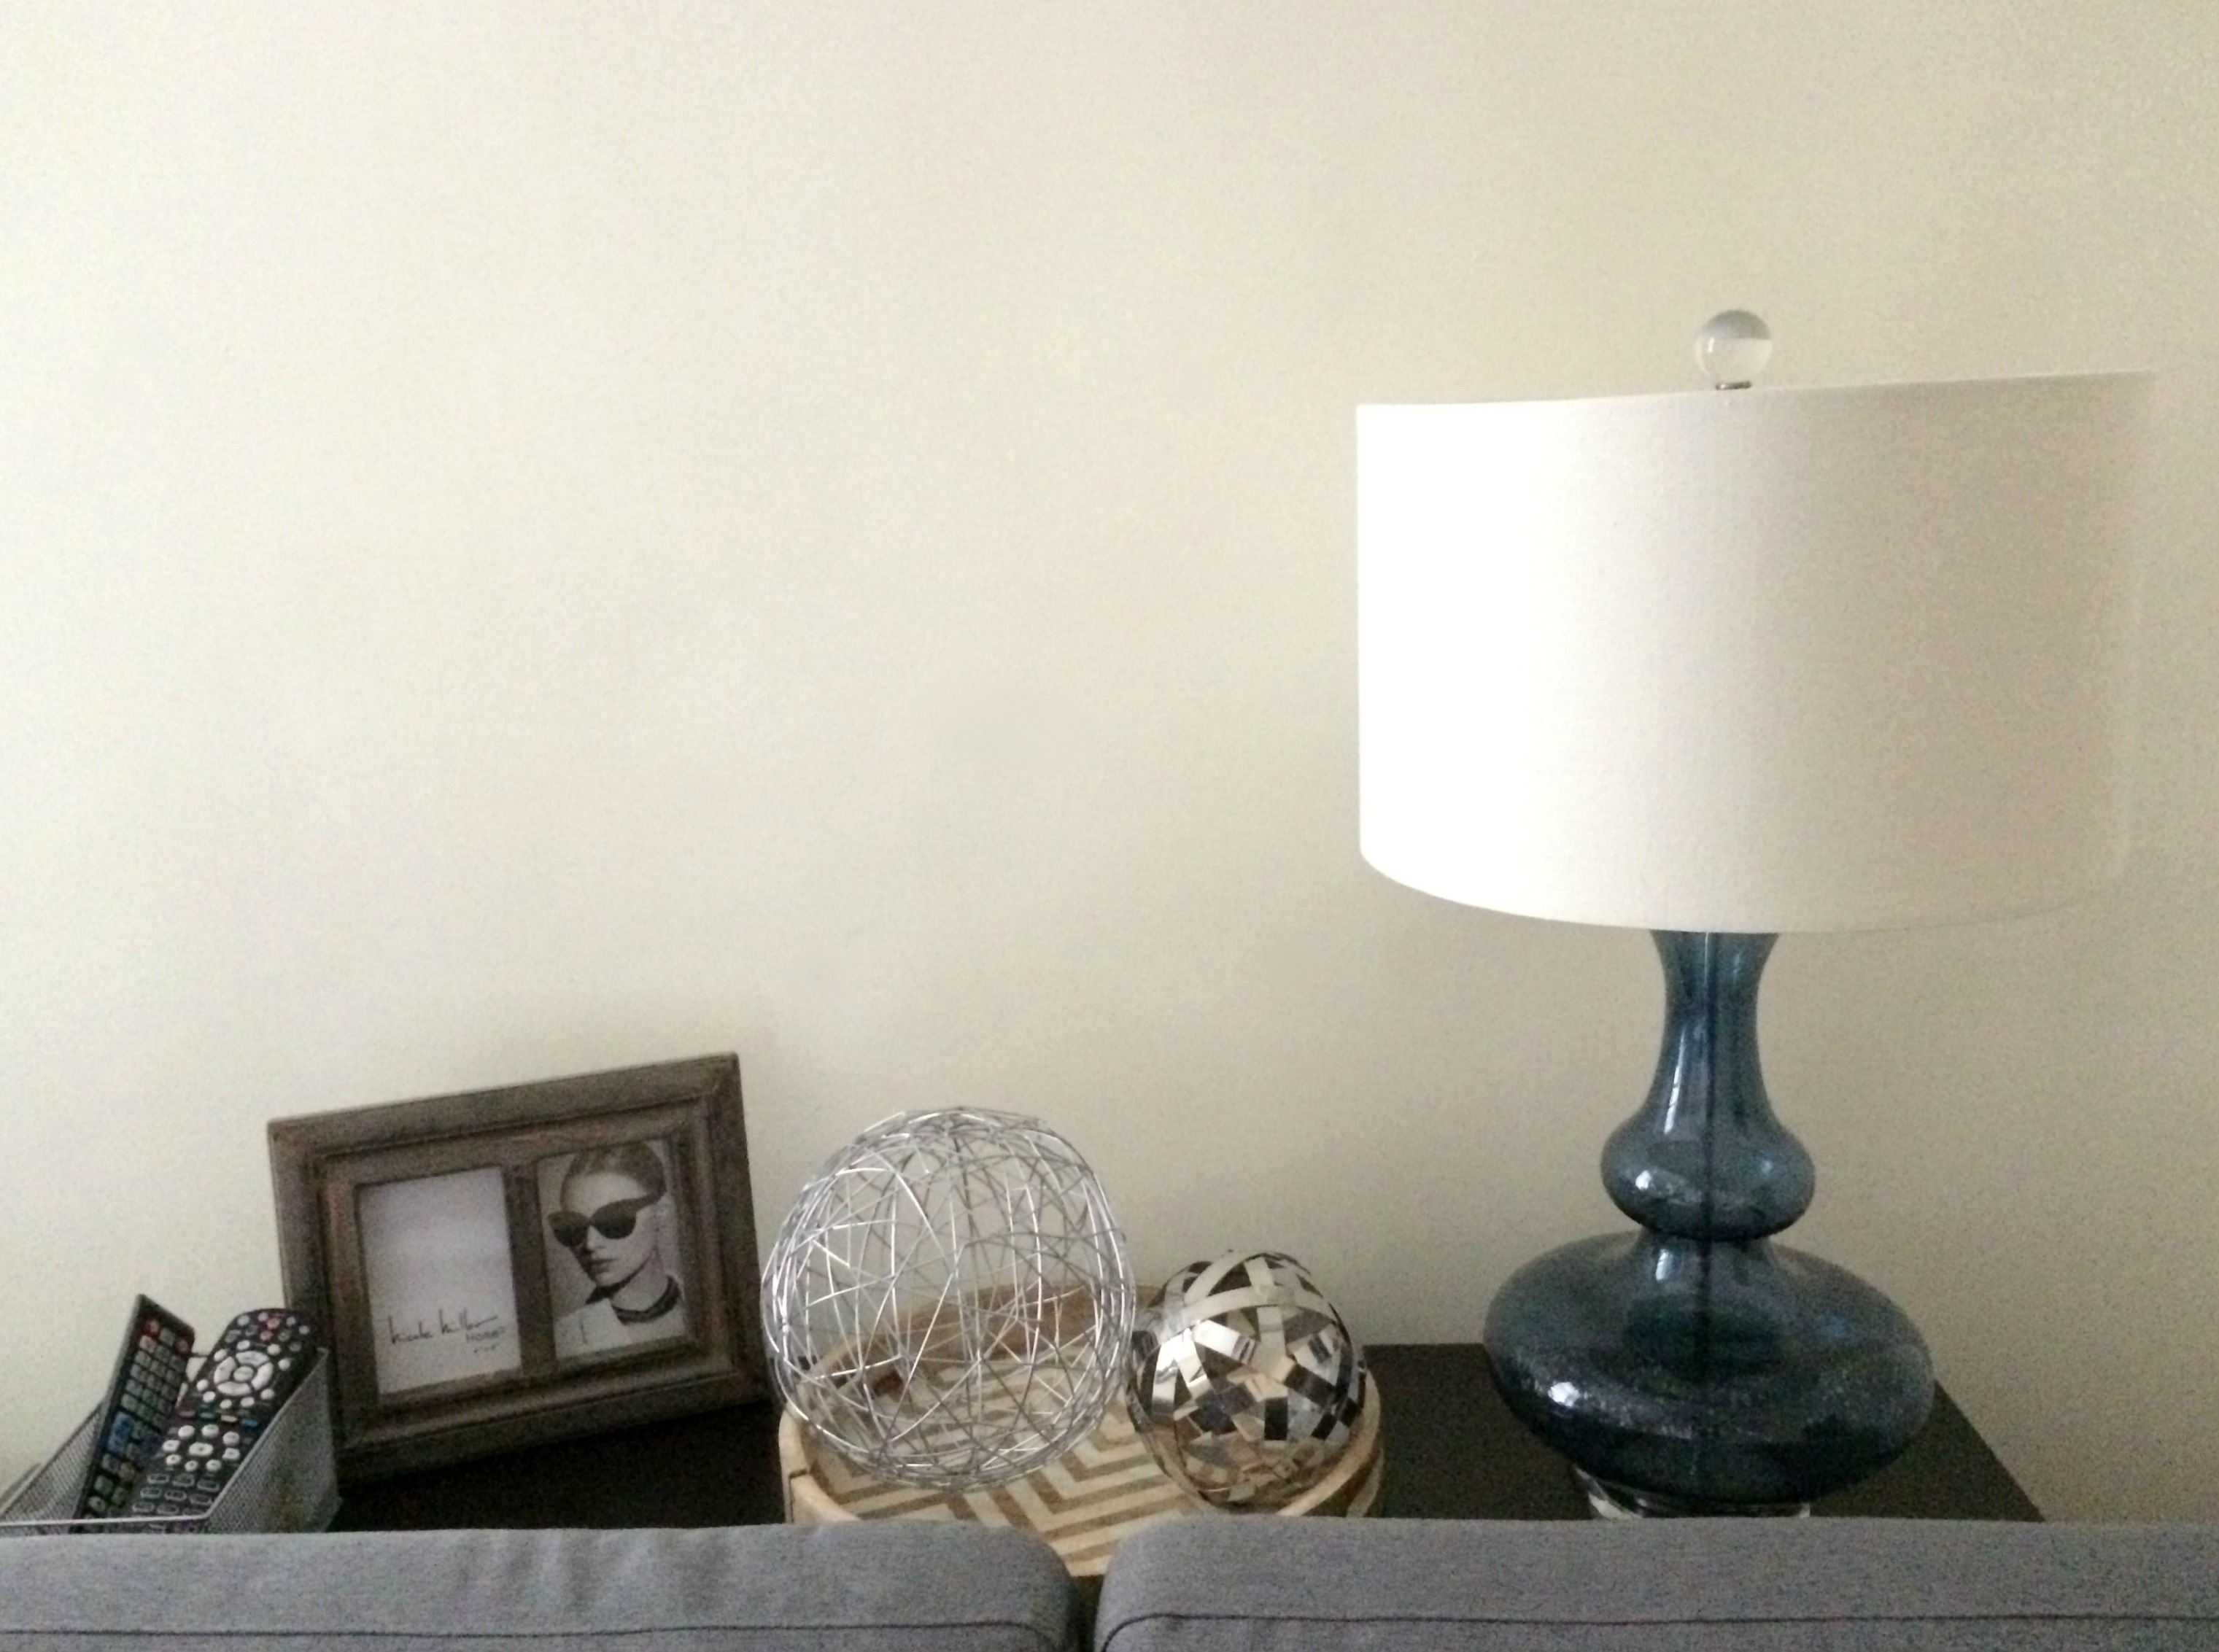 HomeGoods accessories - Nicole Miller lamp and picture frame